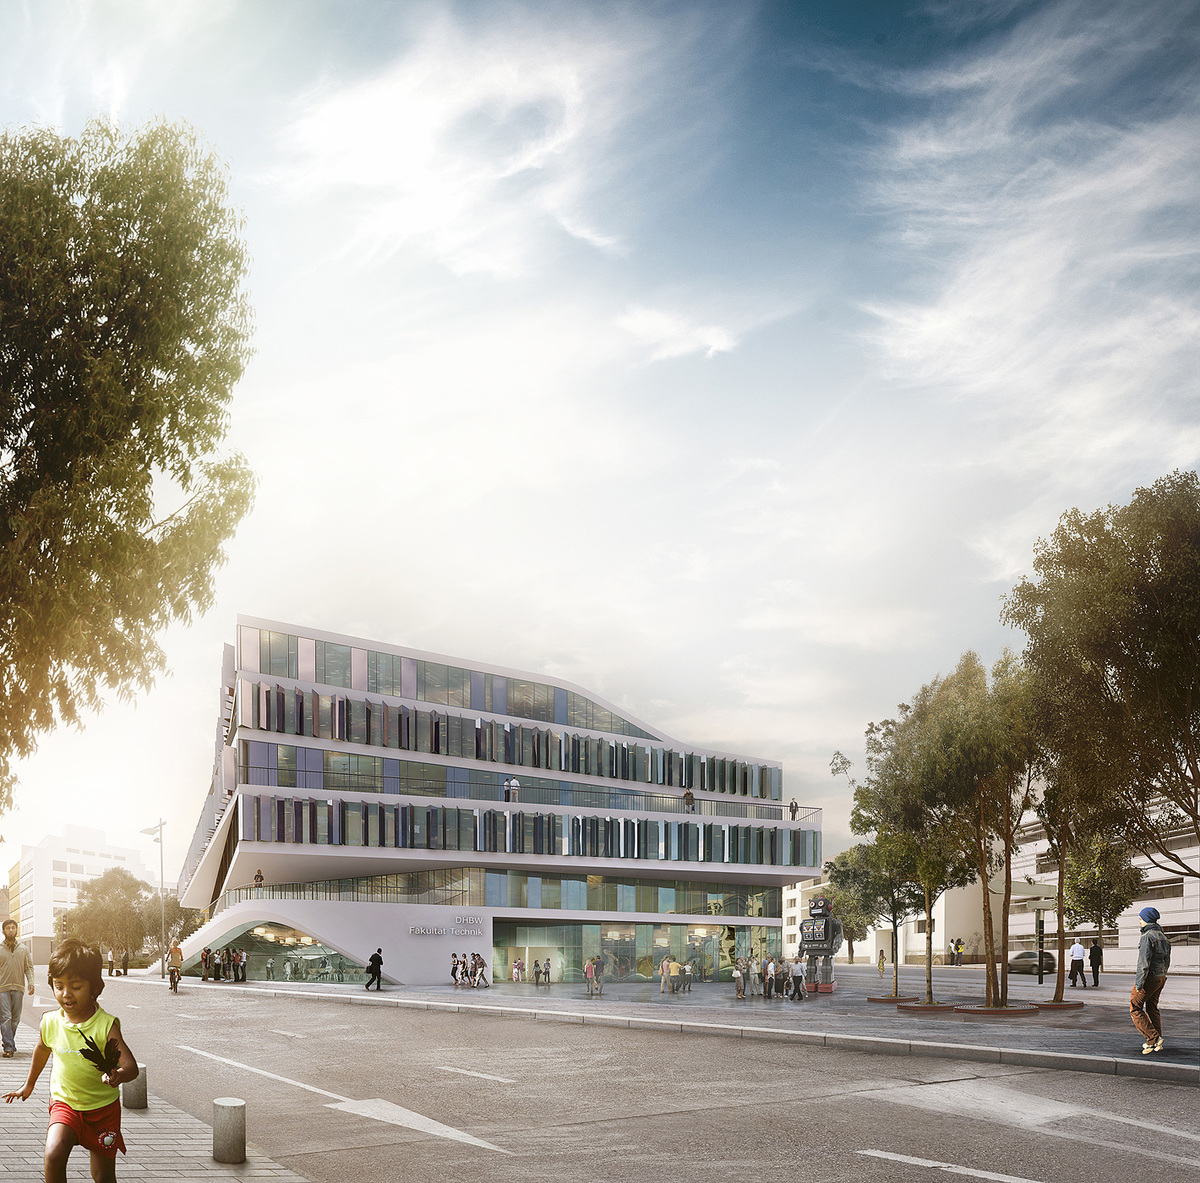 Exterior rendering of 3XN's winning building design for German university Duale Hochschule Baden-Württemberg (Image: 3XN)